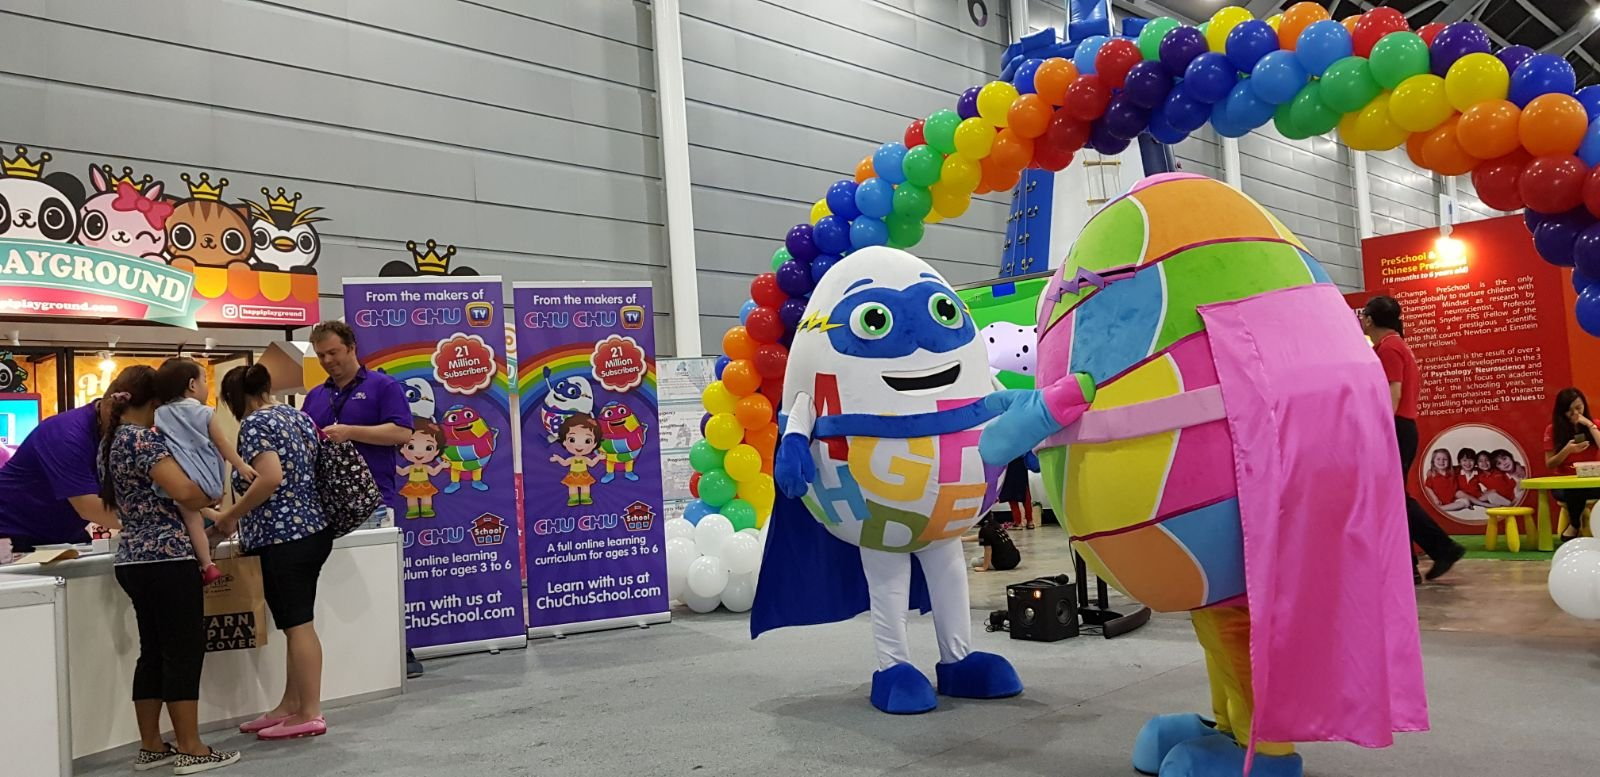 , Rainbow balloon arch for Skoolbo! Creators of Chuchu TV!, Singapore Balloon Decoration Services - Balloon Workshop and Balloon Sculpting